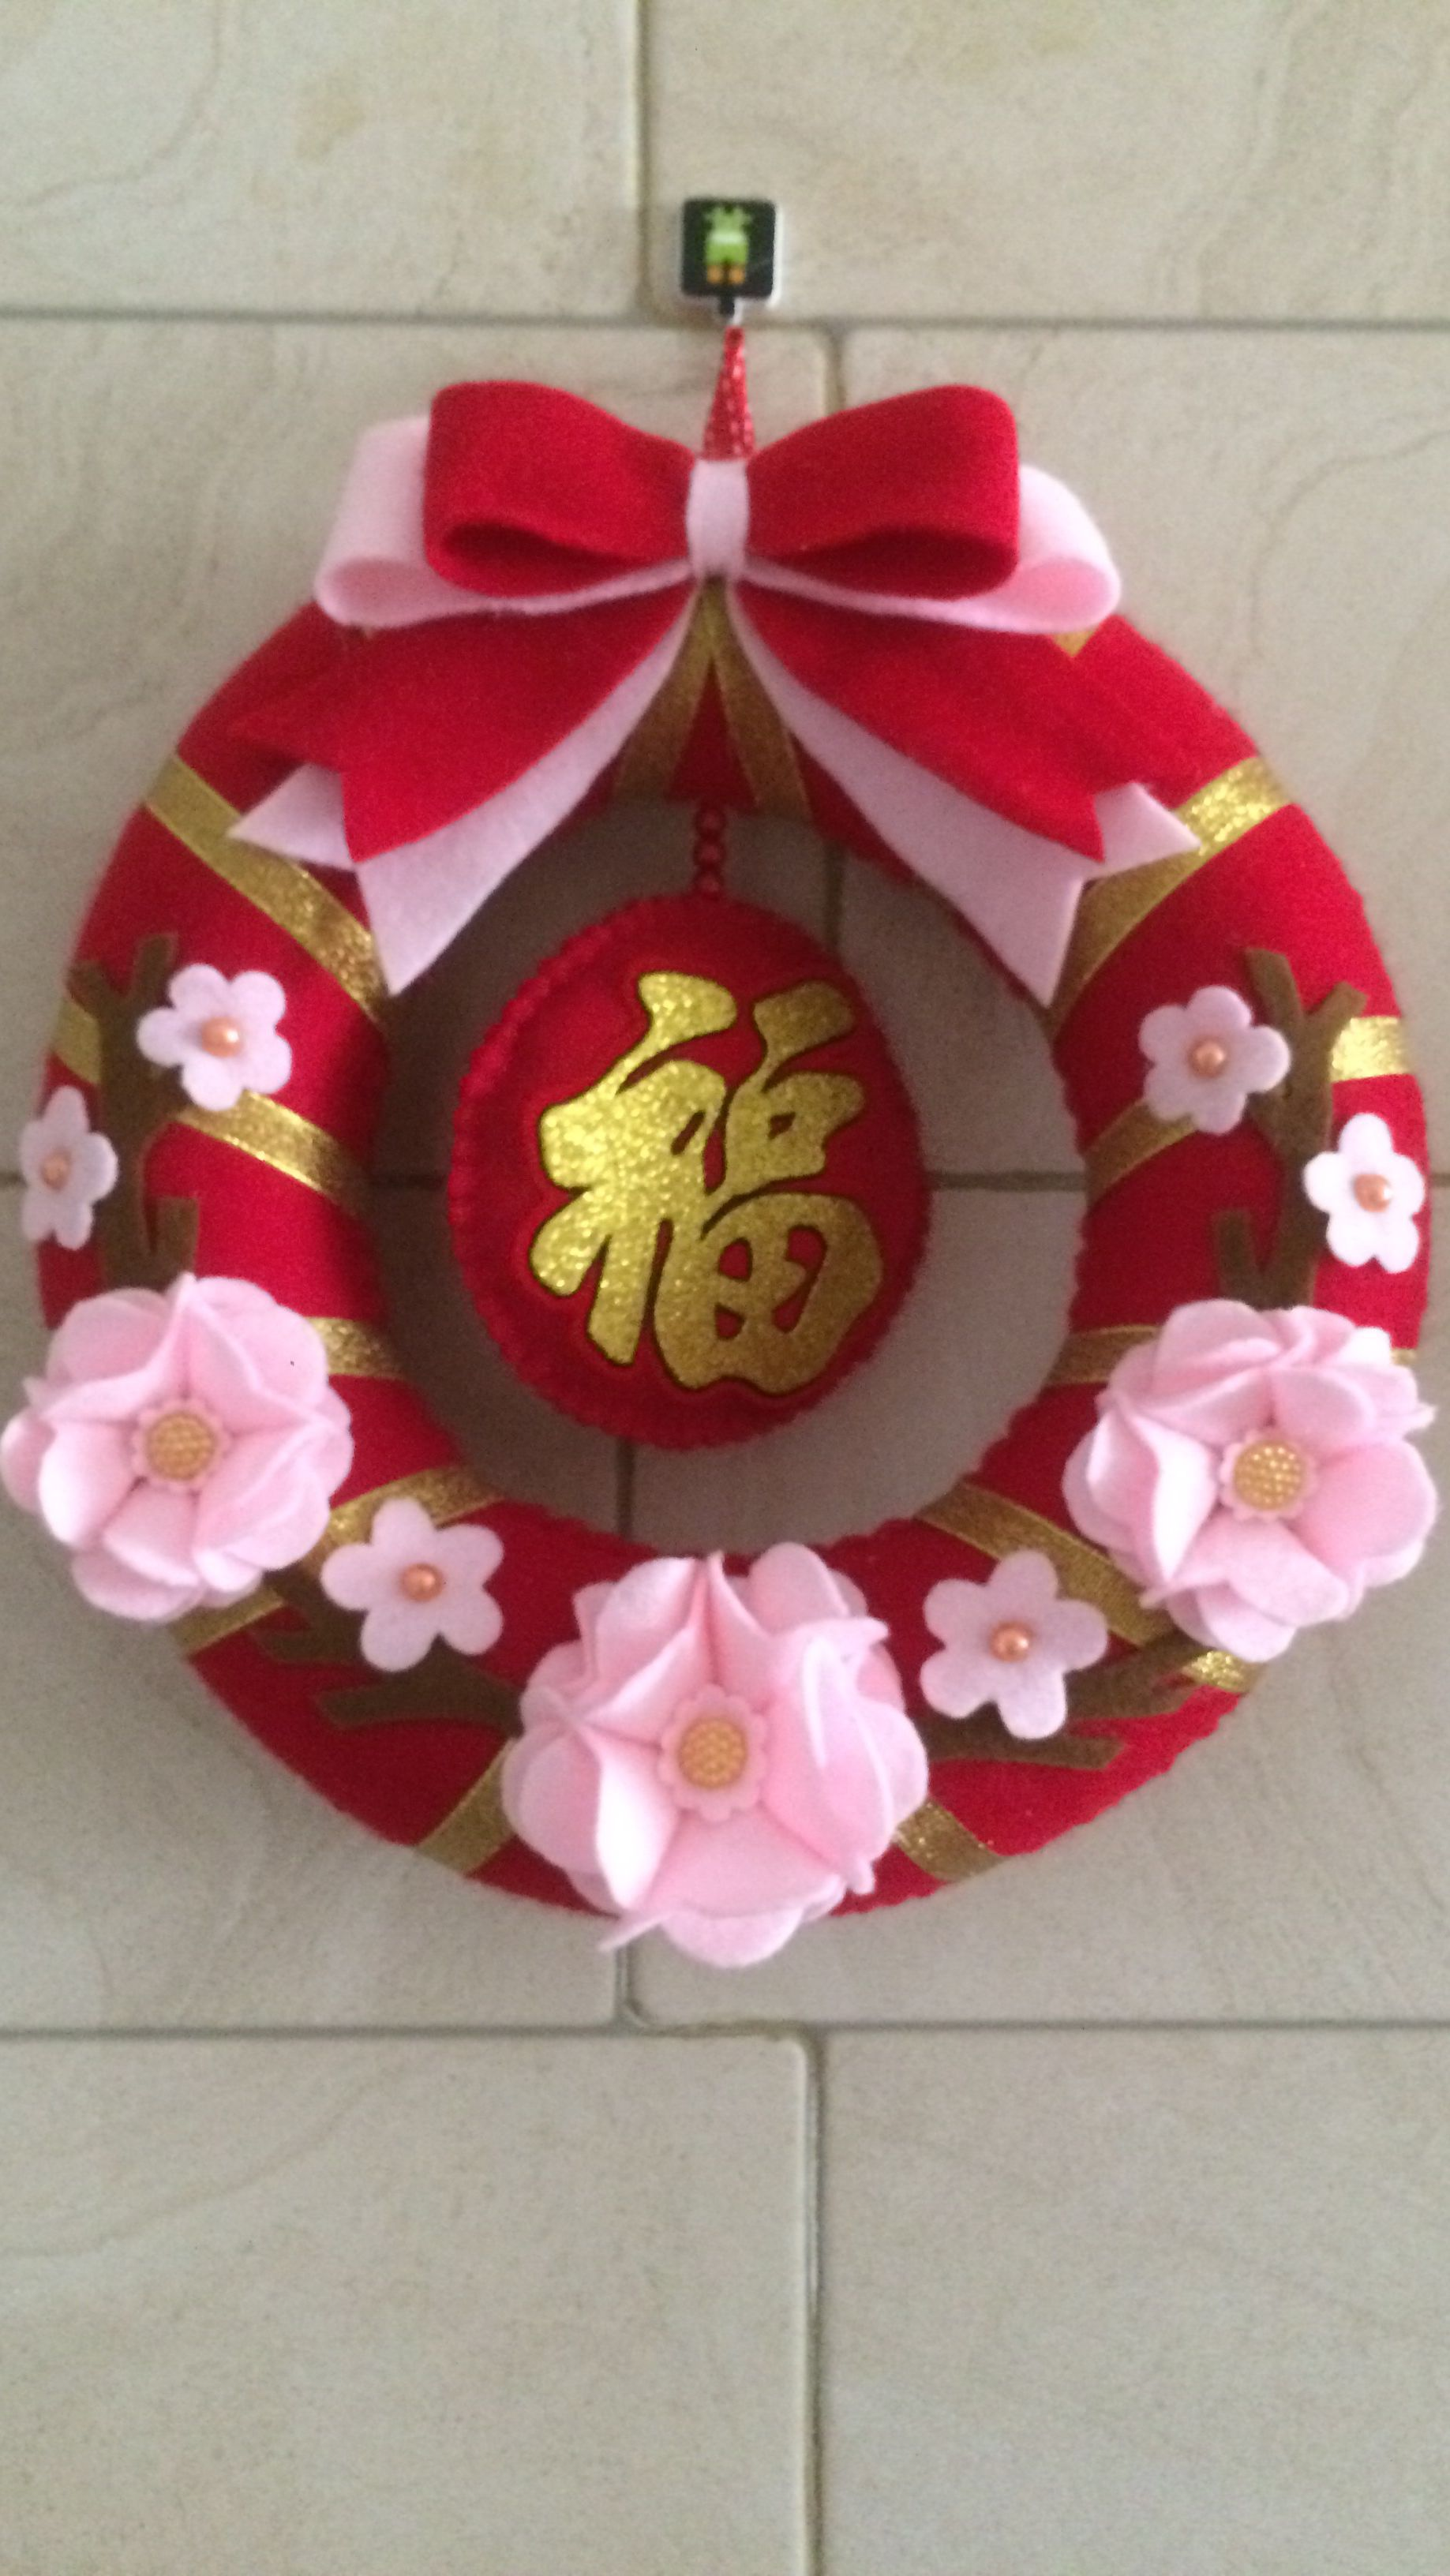 Chinese New Year Wreath Chinese new year crafts, Chinese